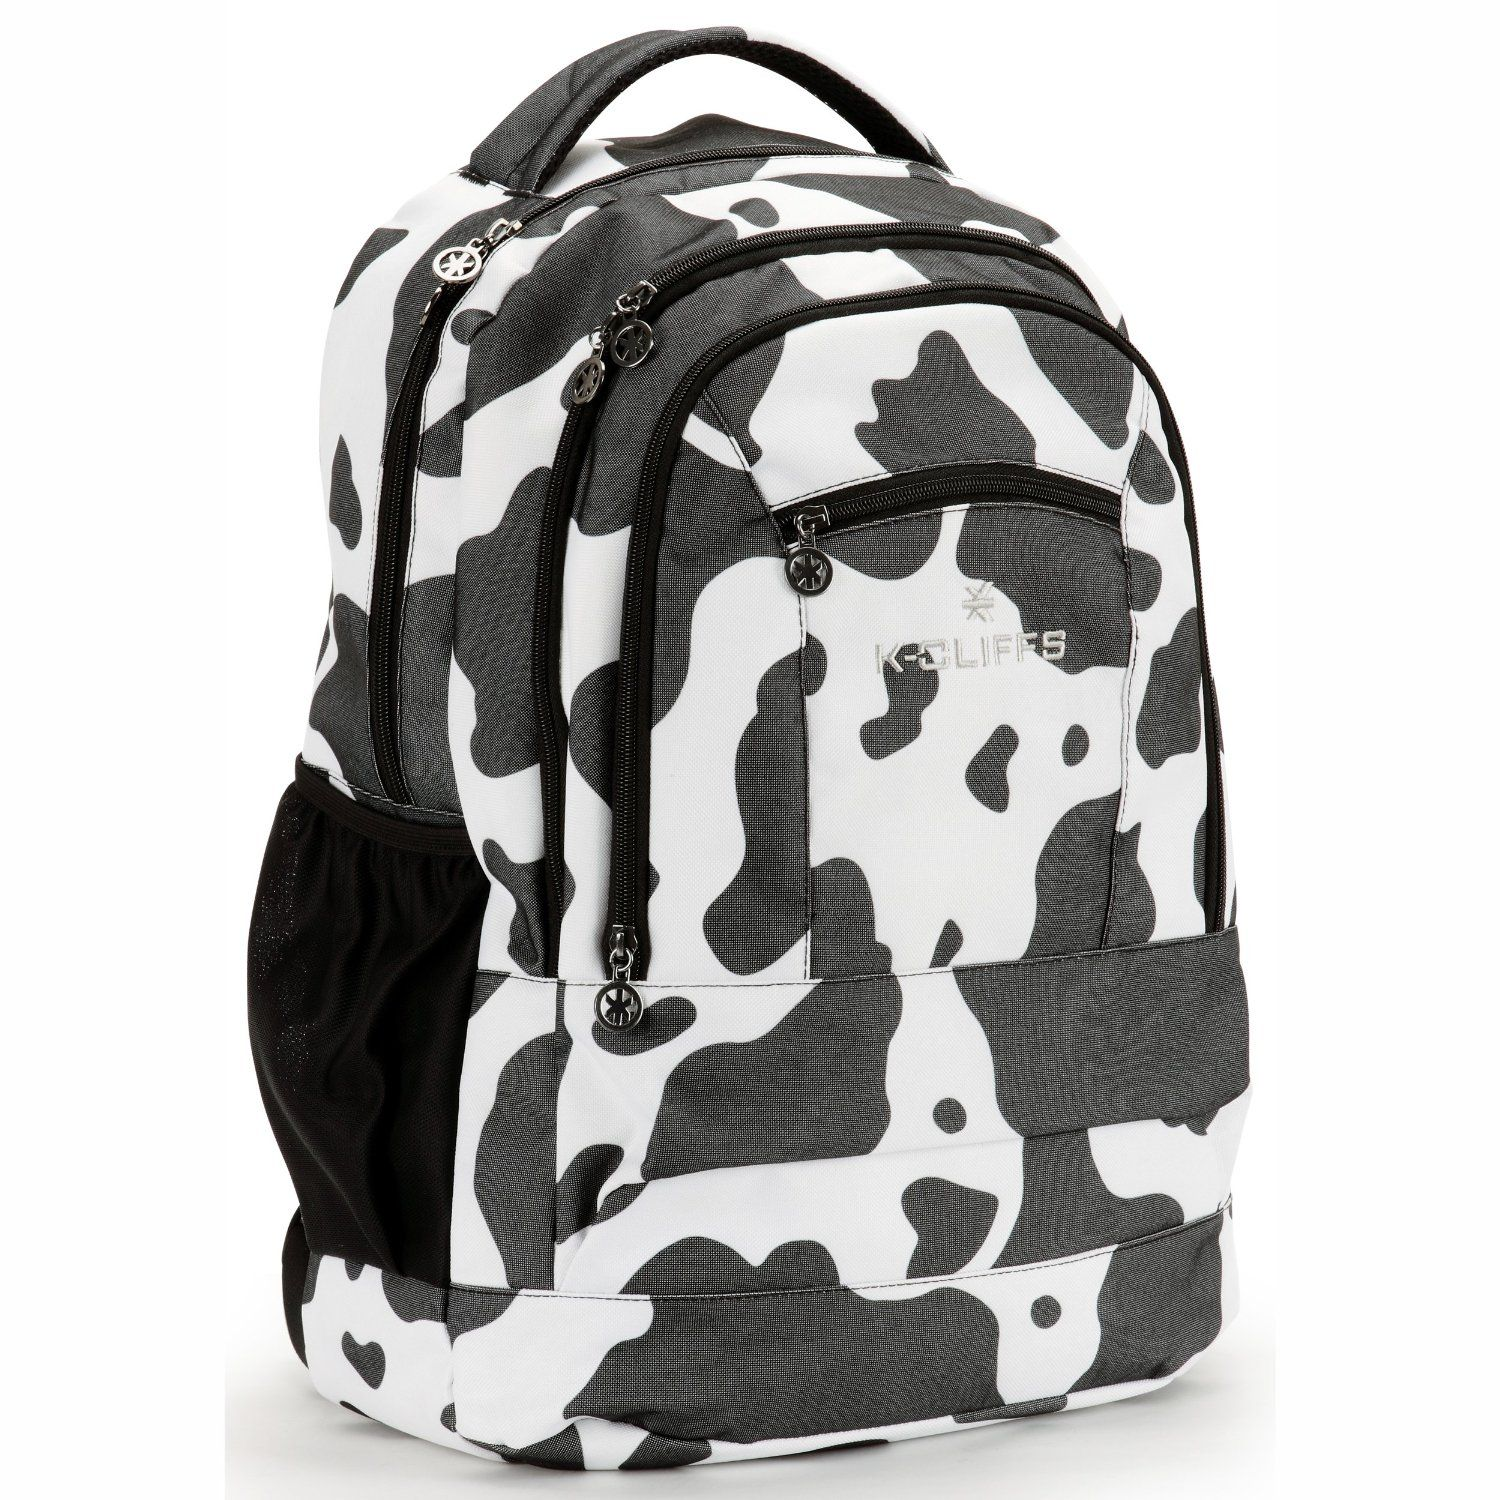 Cow Print Premium Quality Student Backpack